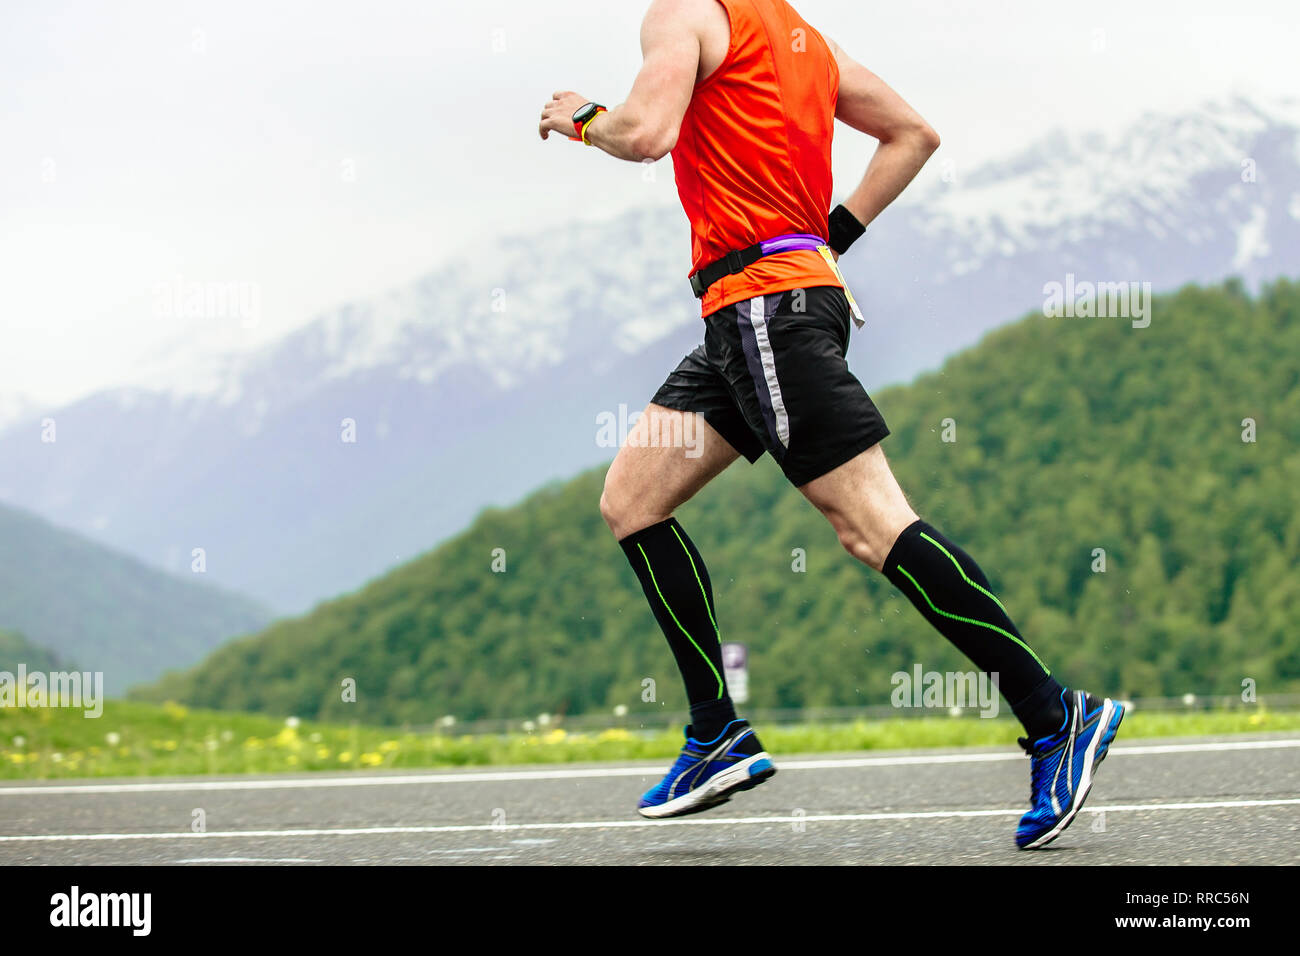 98dbad419 man runner in compression socks running on road in mountains - Stock Image